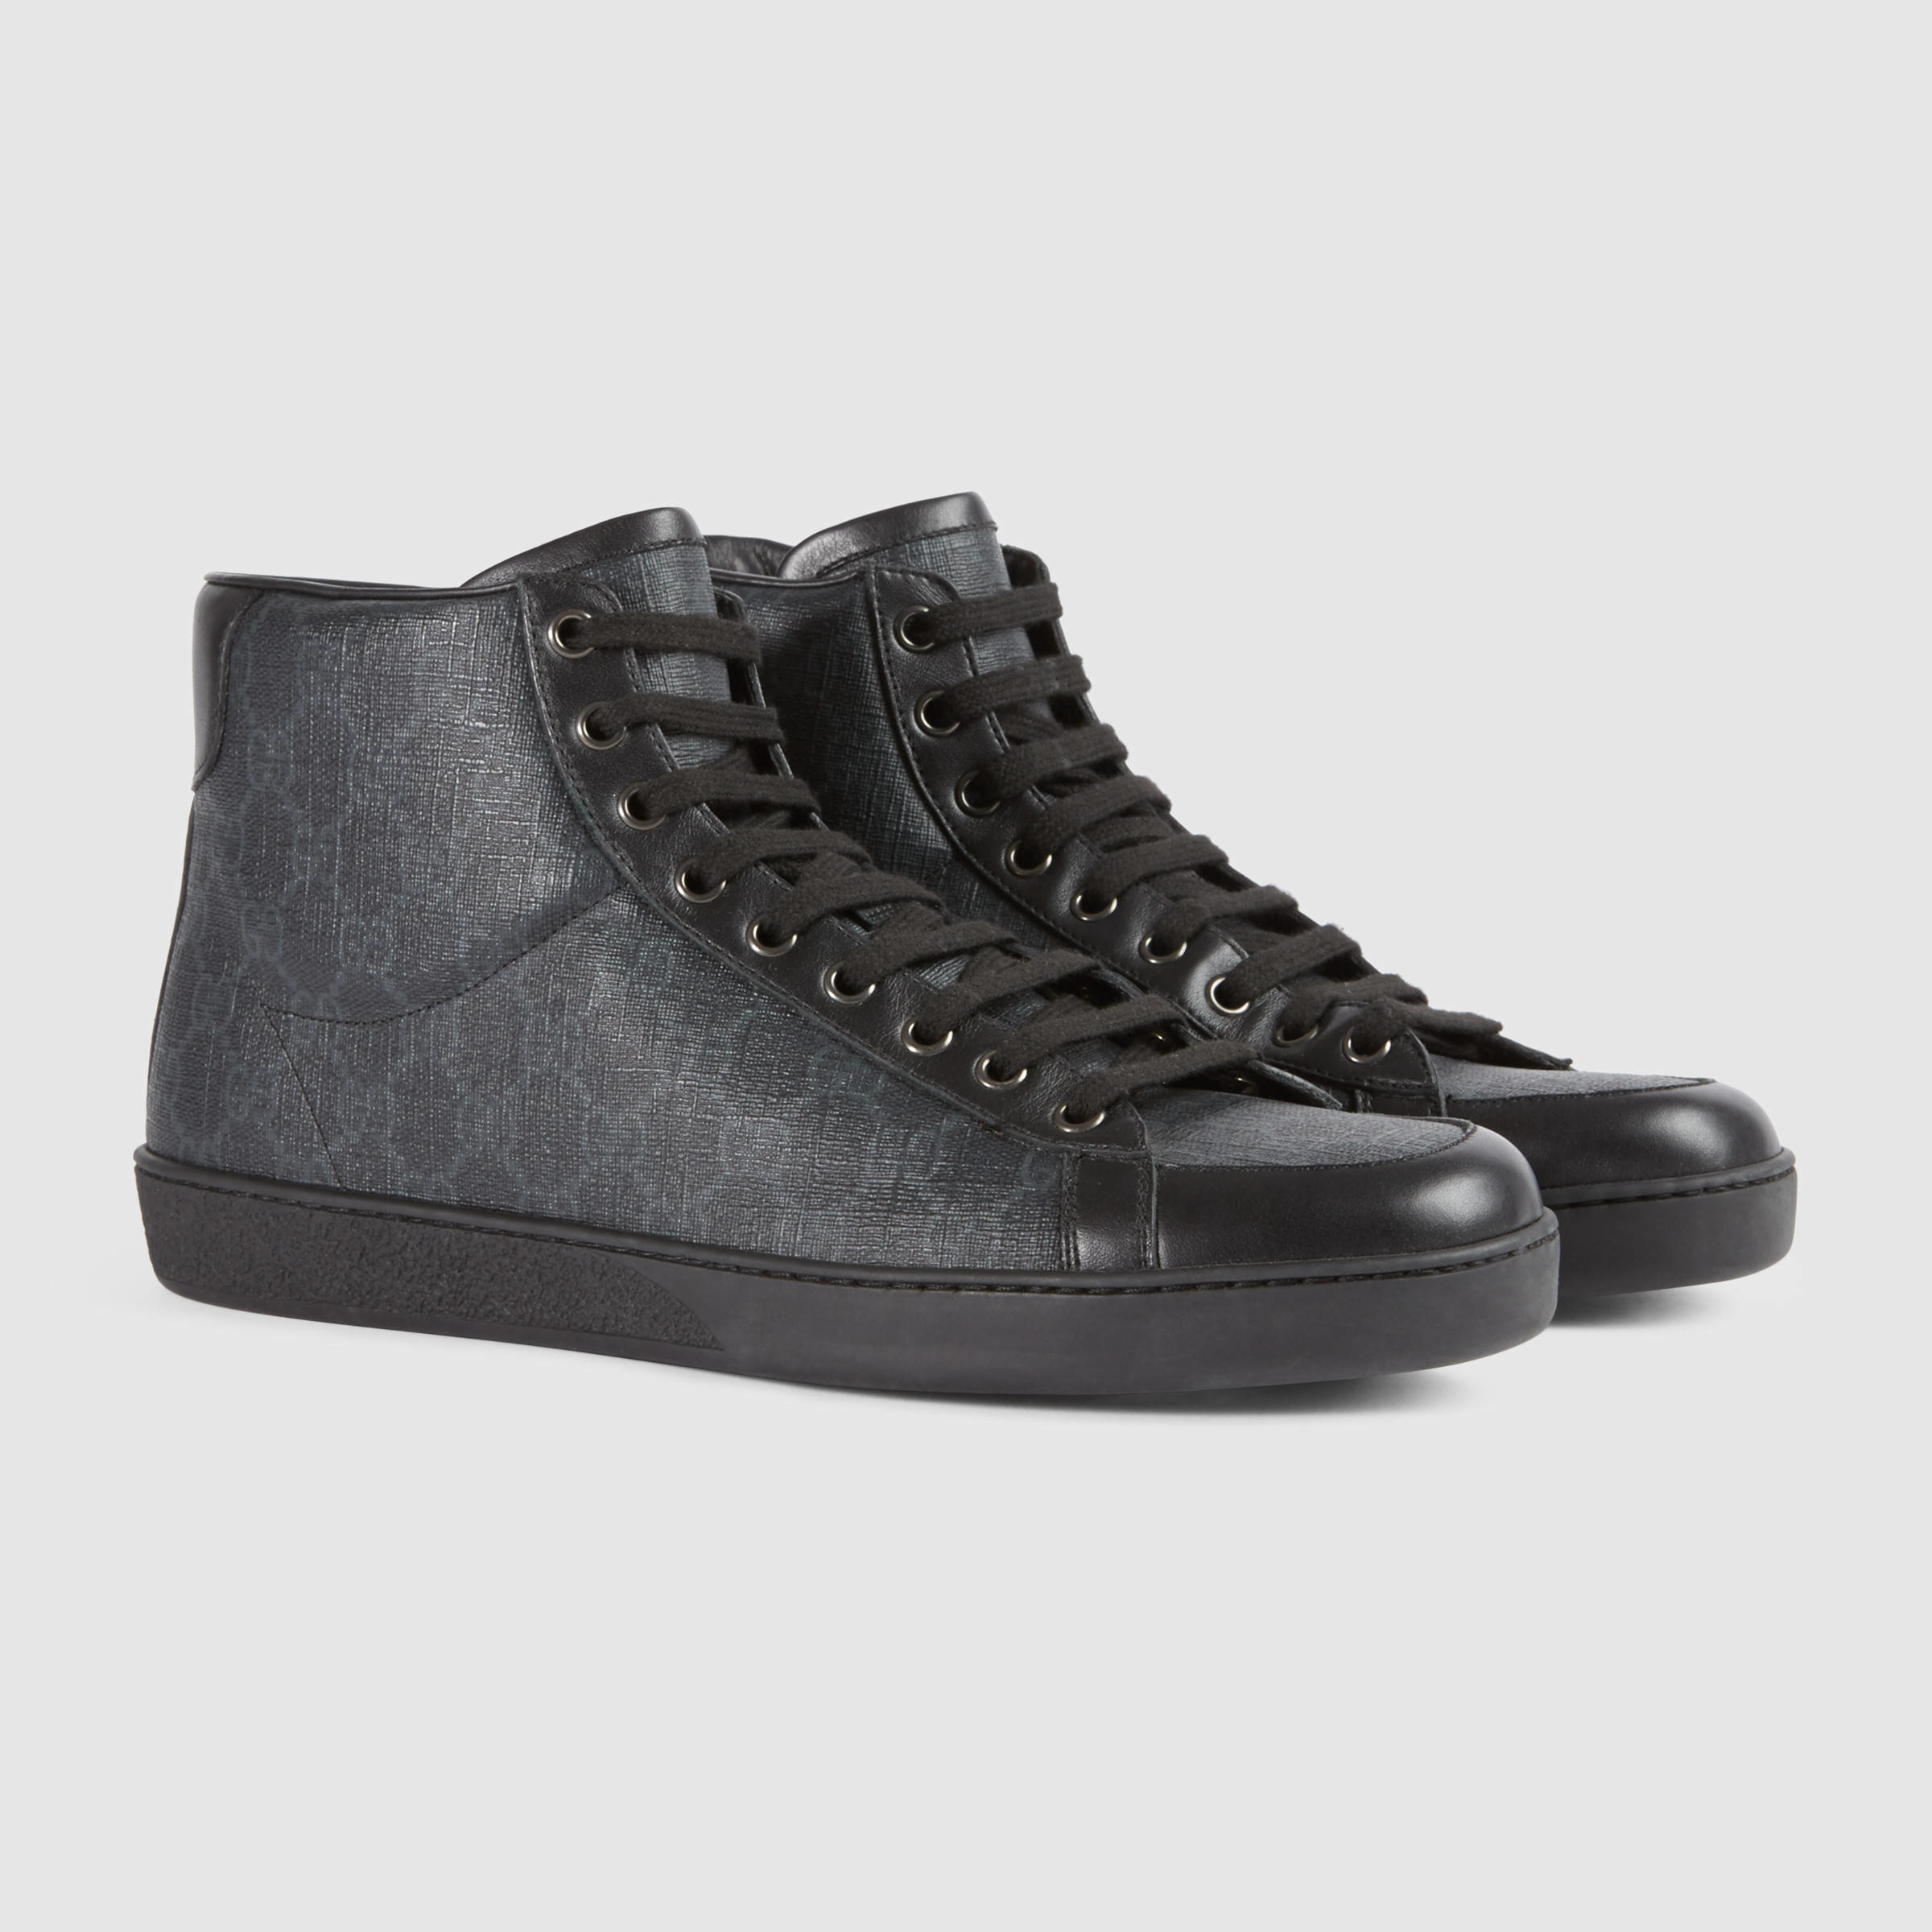 dbbbae81591 Lyst - Gucci Gg Supreme High-top Sneaker in Gray for Men